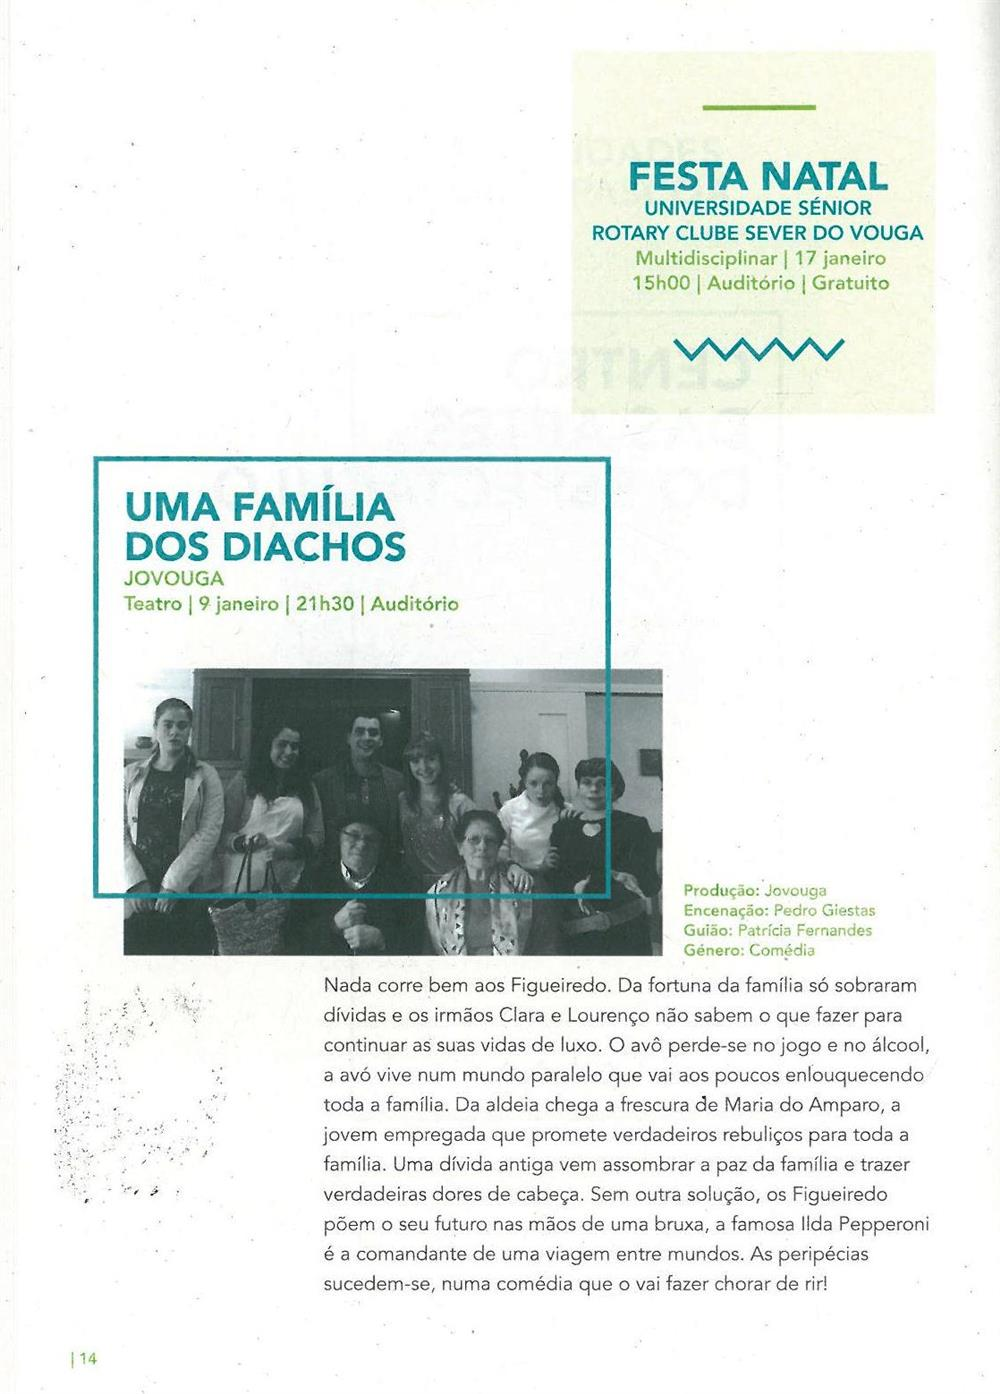 ACMSV-jan.,fev.,mar.'16-p.14-Festa Natal : Universidade Sénior : Rotary Clube Sever do Vouga.jpg